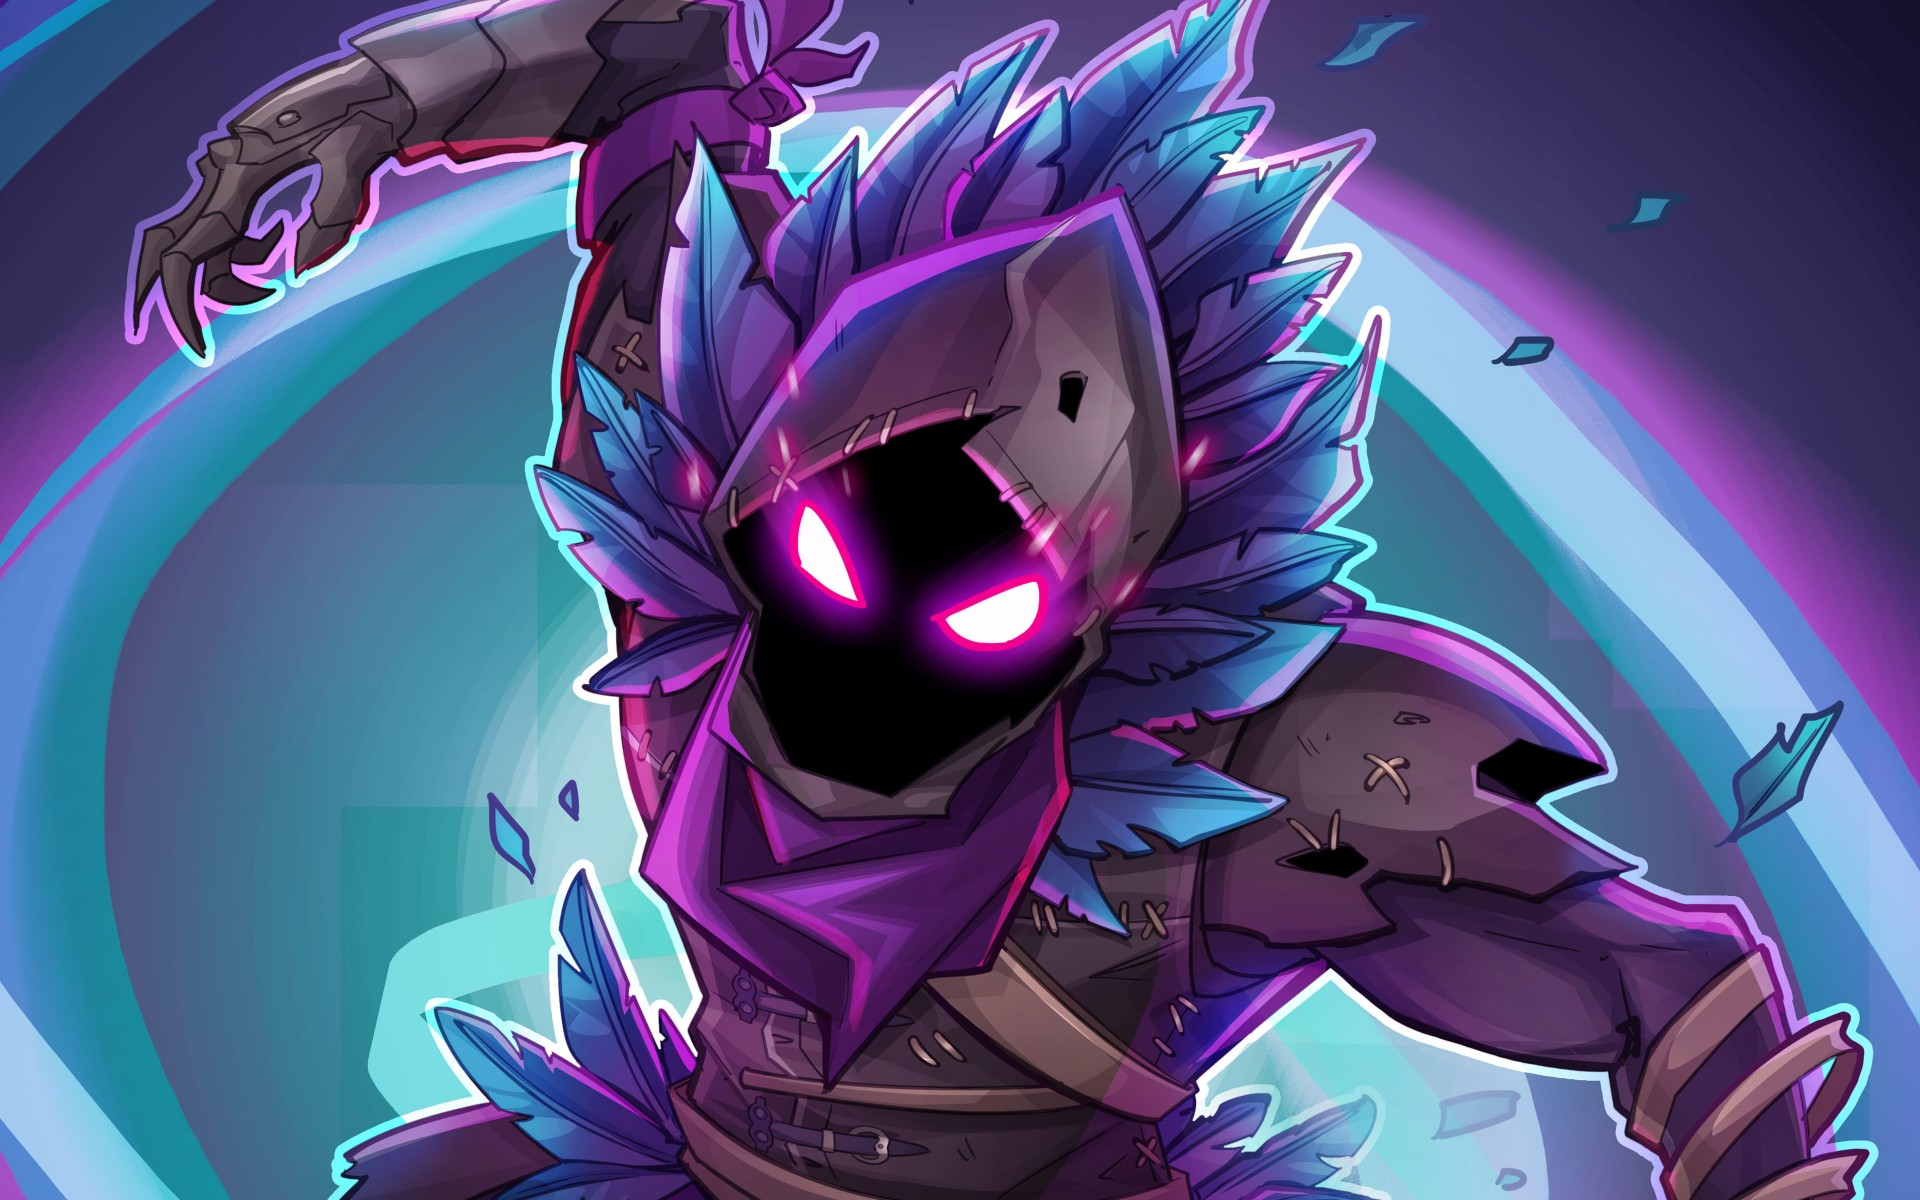 Iphone X Fornite Wallpapers Fortnite Rraven 4k Wallpapers Hd Wallpapers Id 24192